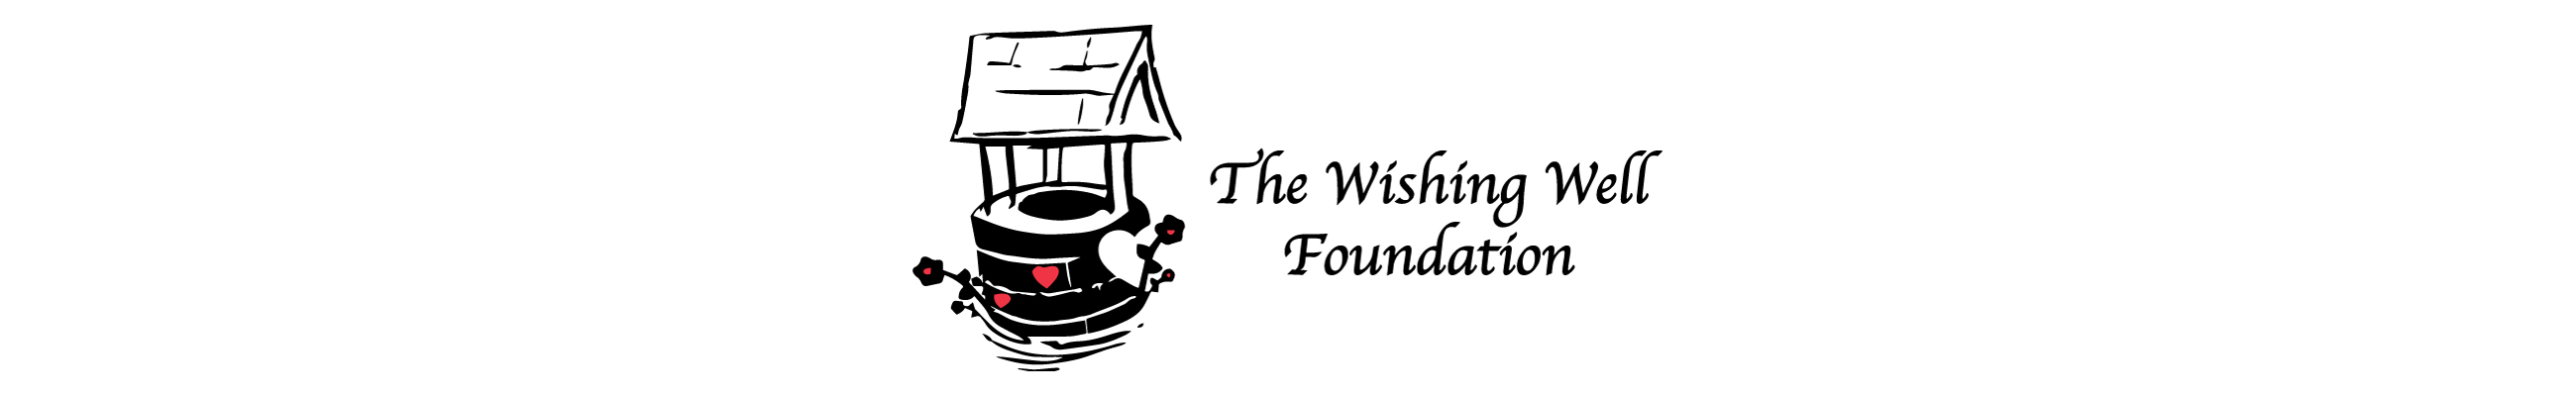 Foster-Care-Support-The-Wishing-Well-Foundation